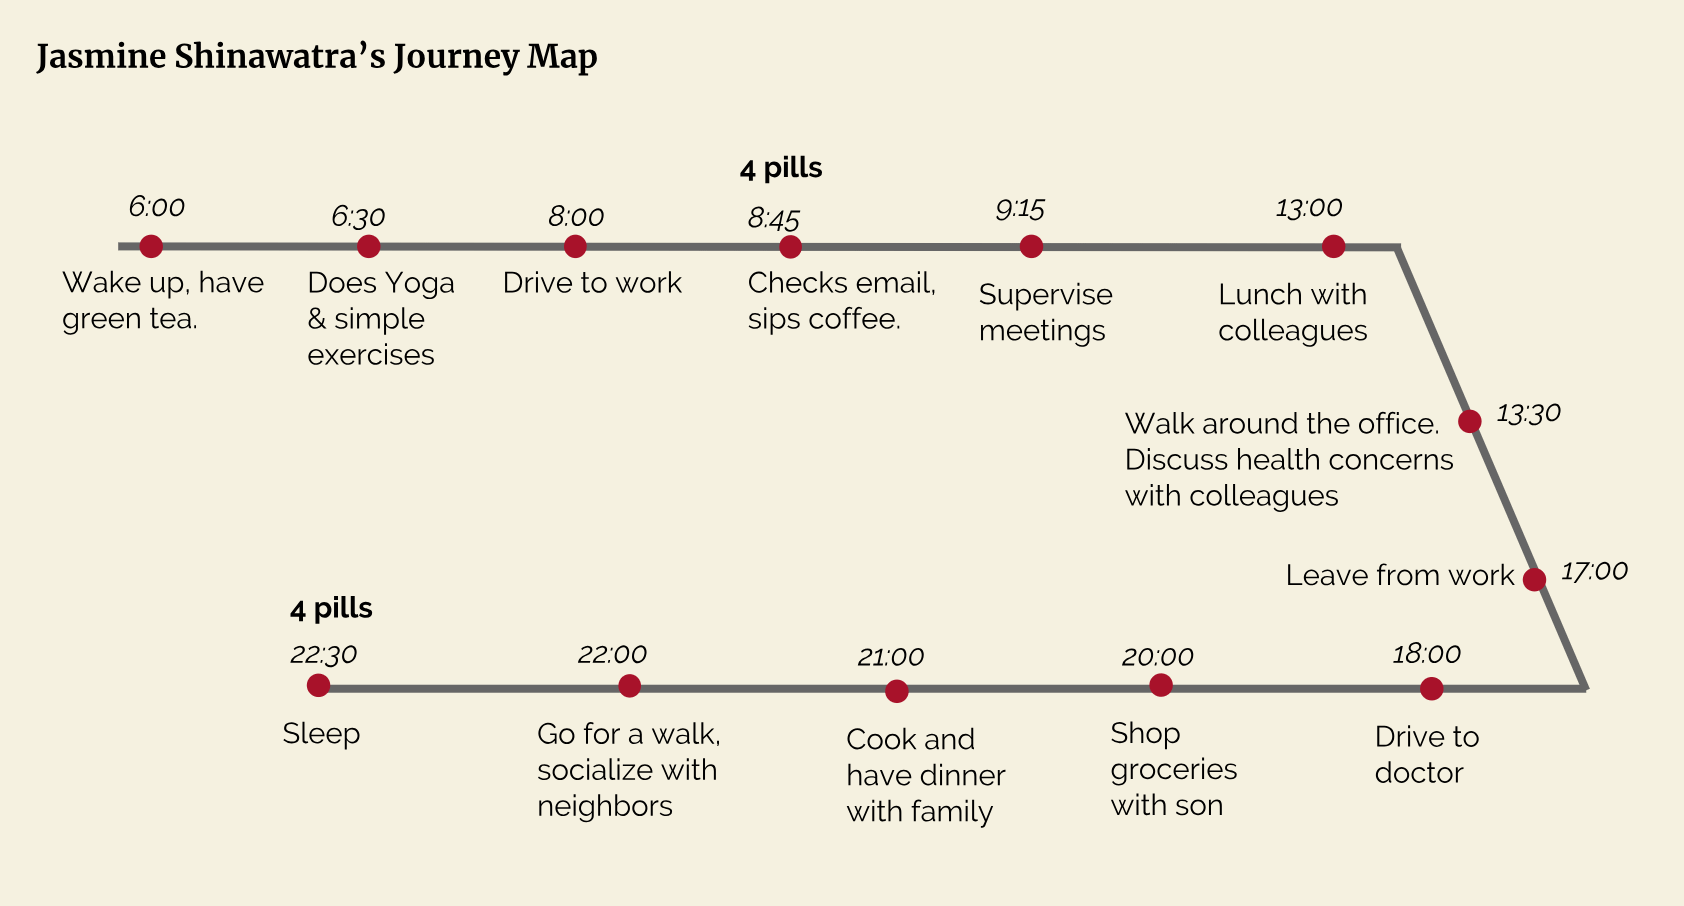 Jasmine Shinawatra Journey Map